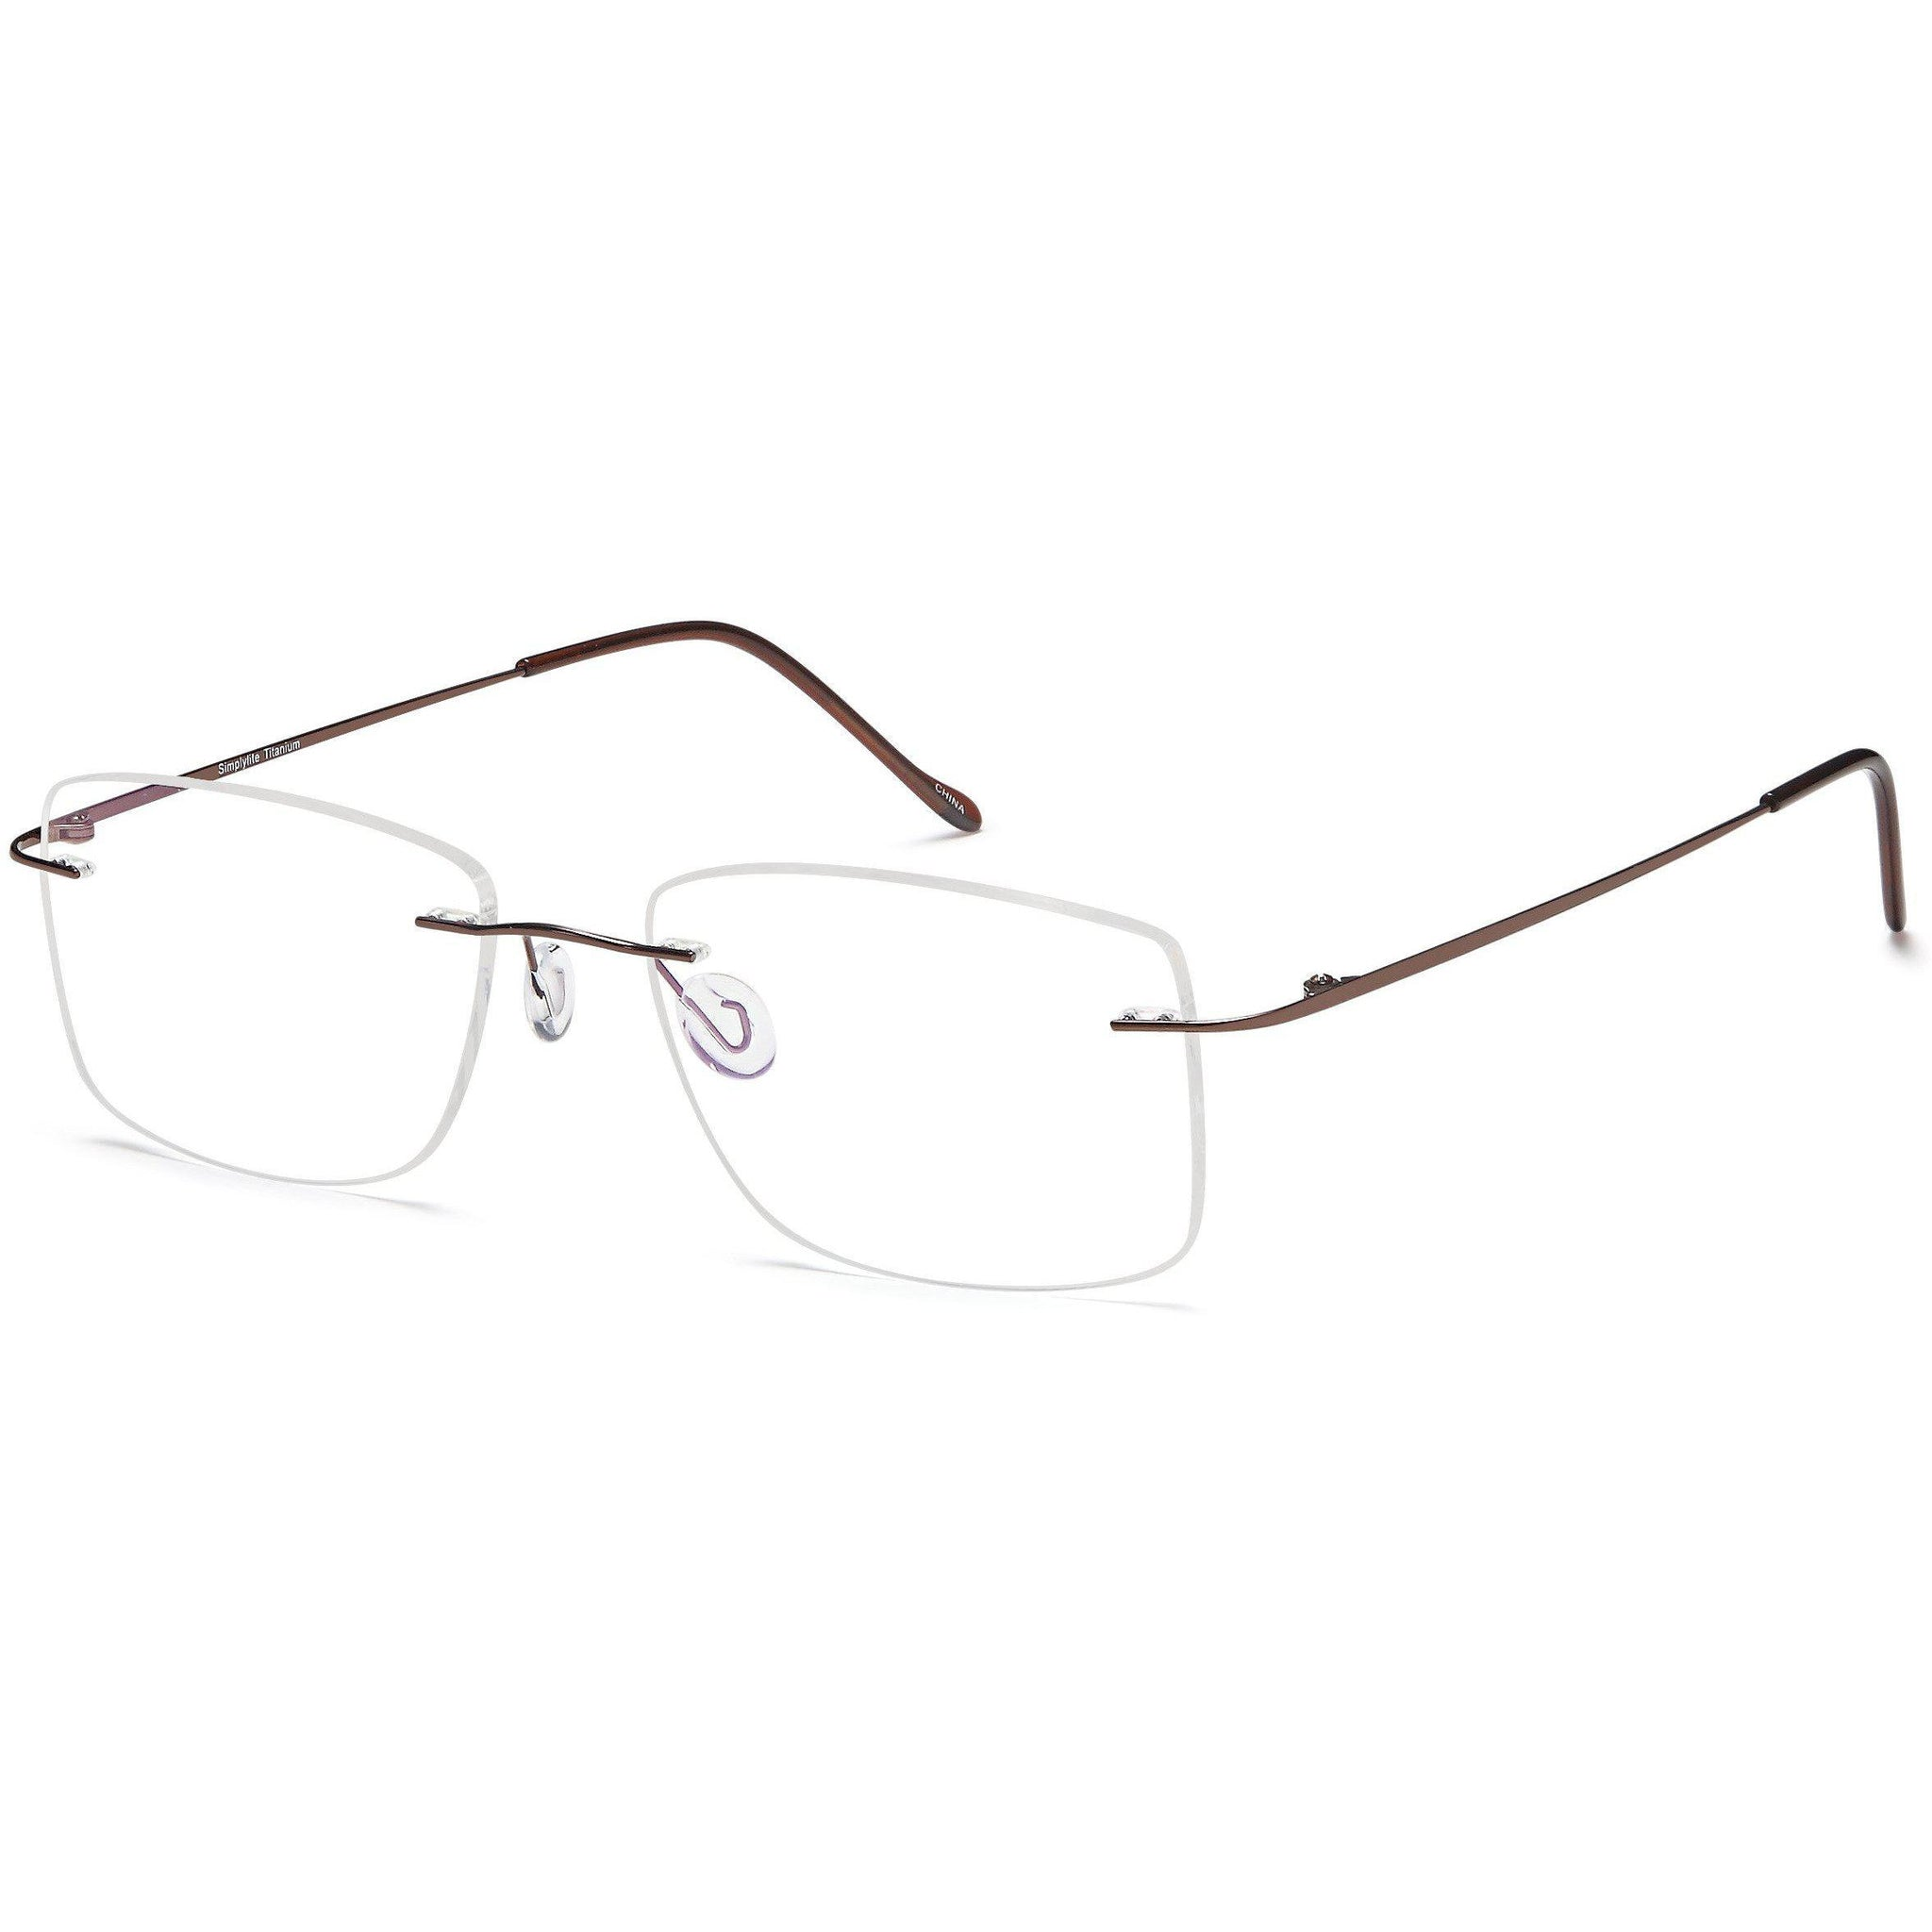 Feather Prescription Glasses SL 703 Eyeglasses Frames